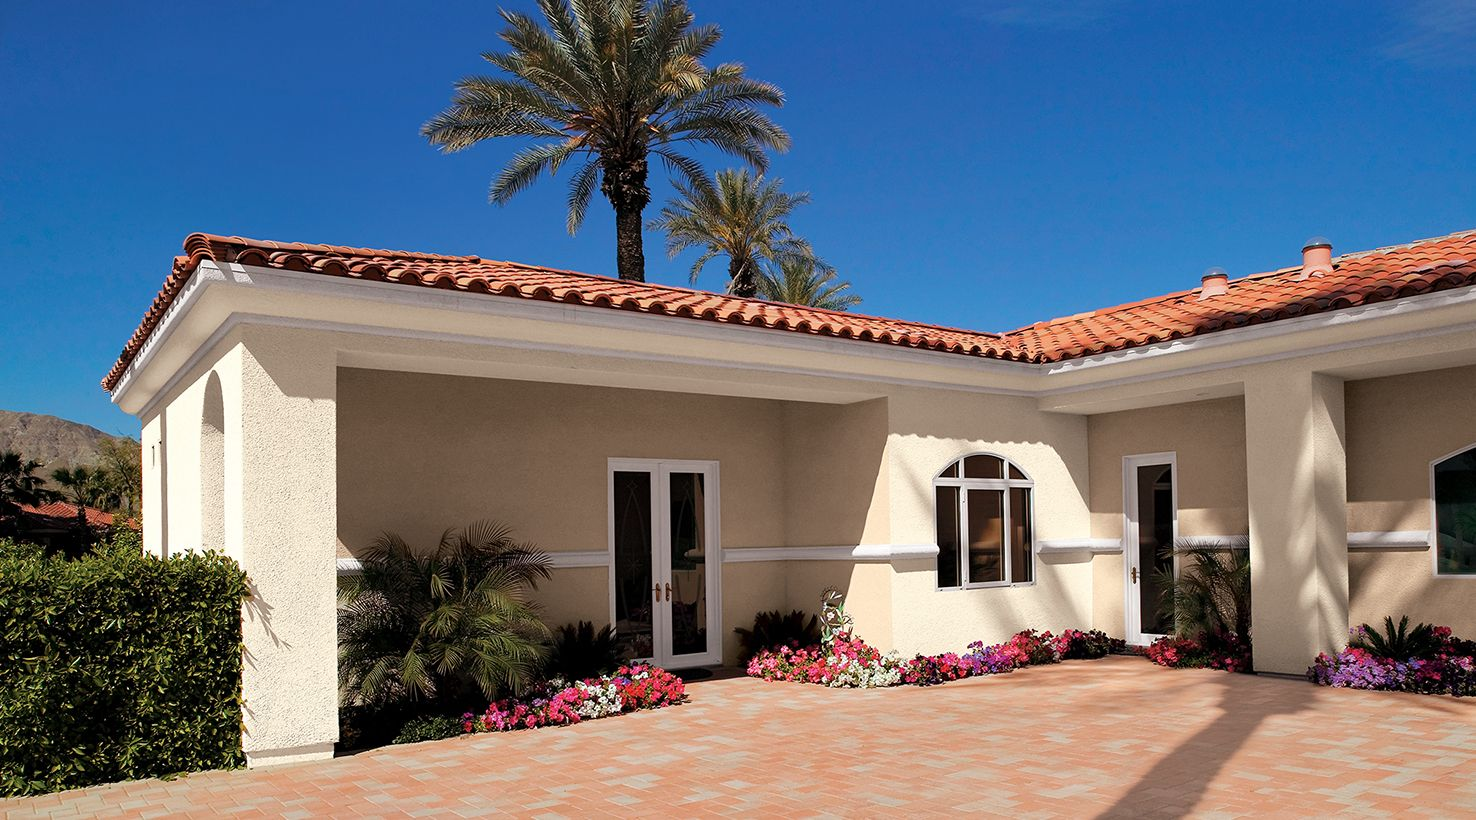 Exterior House Color Inspiration Sherwin Williams Exterior Paint Colors For House White Exterior Houses House Exterior